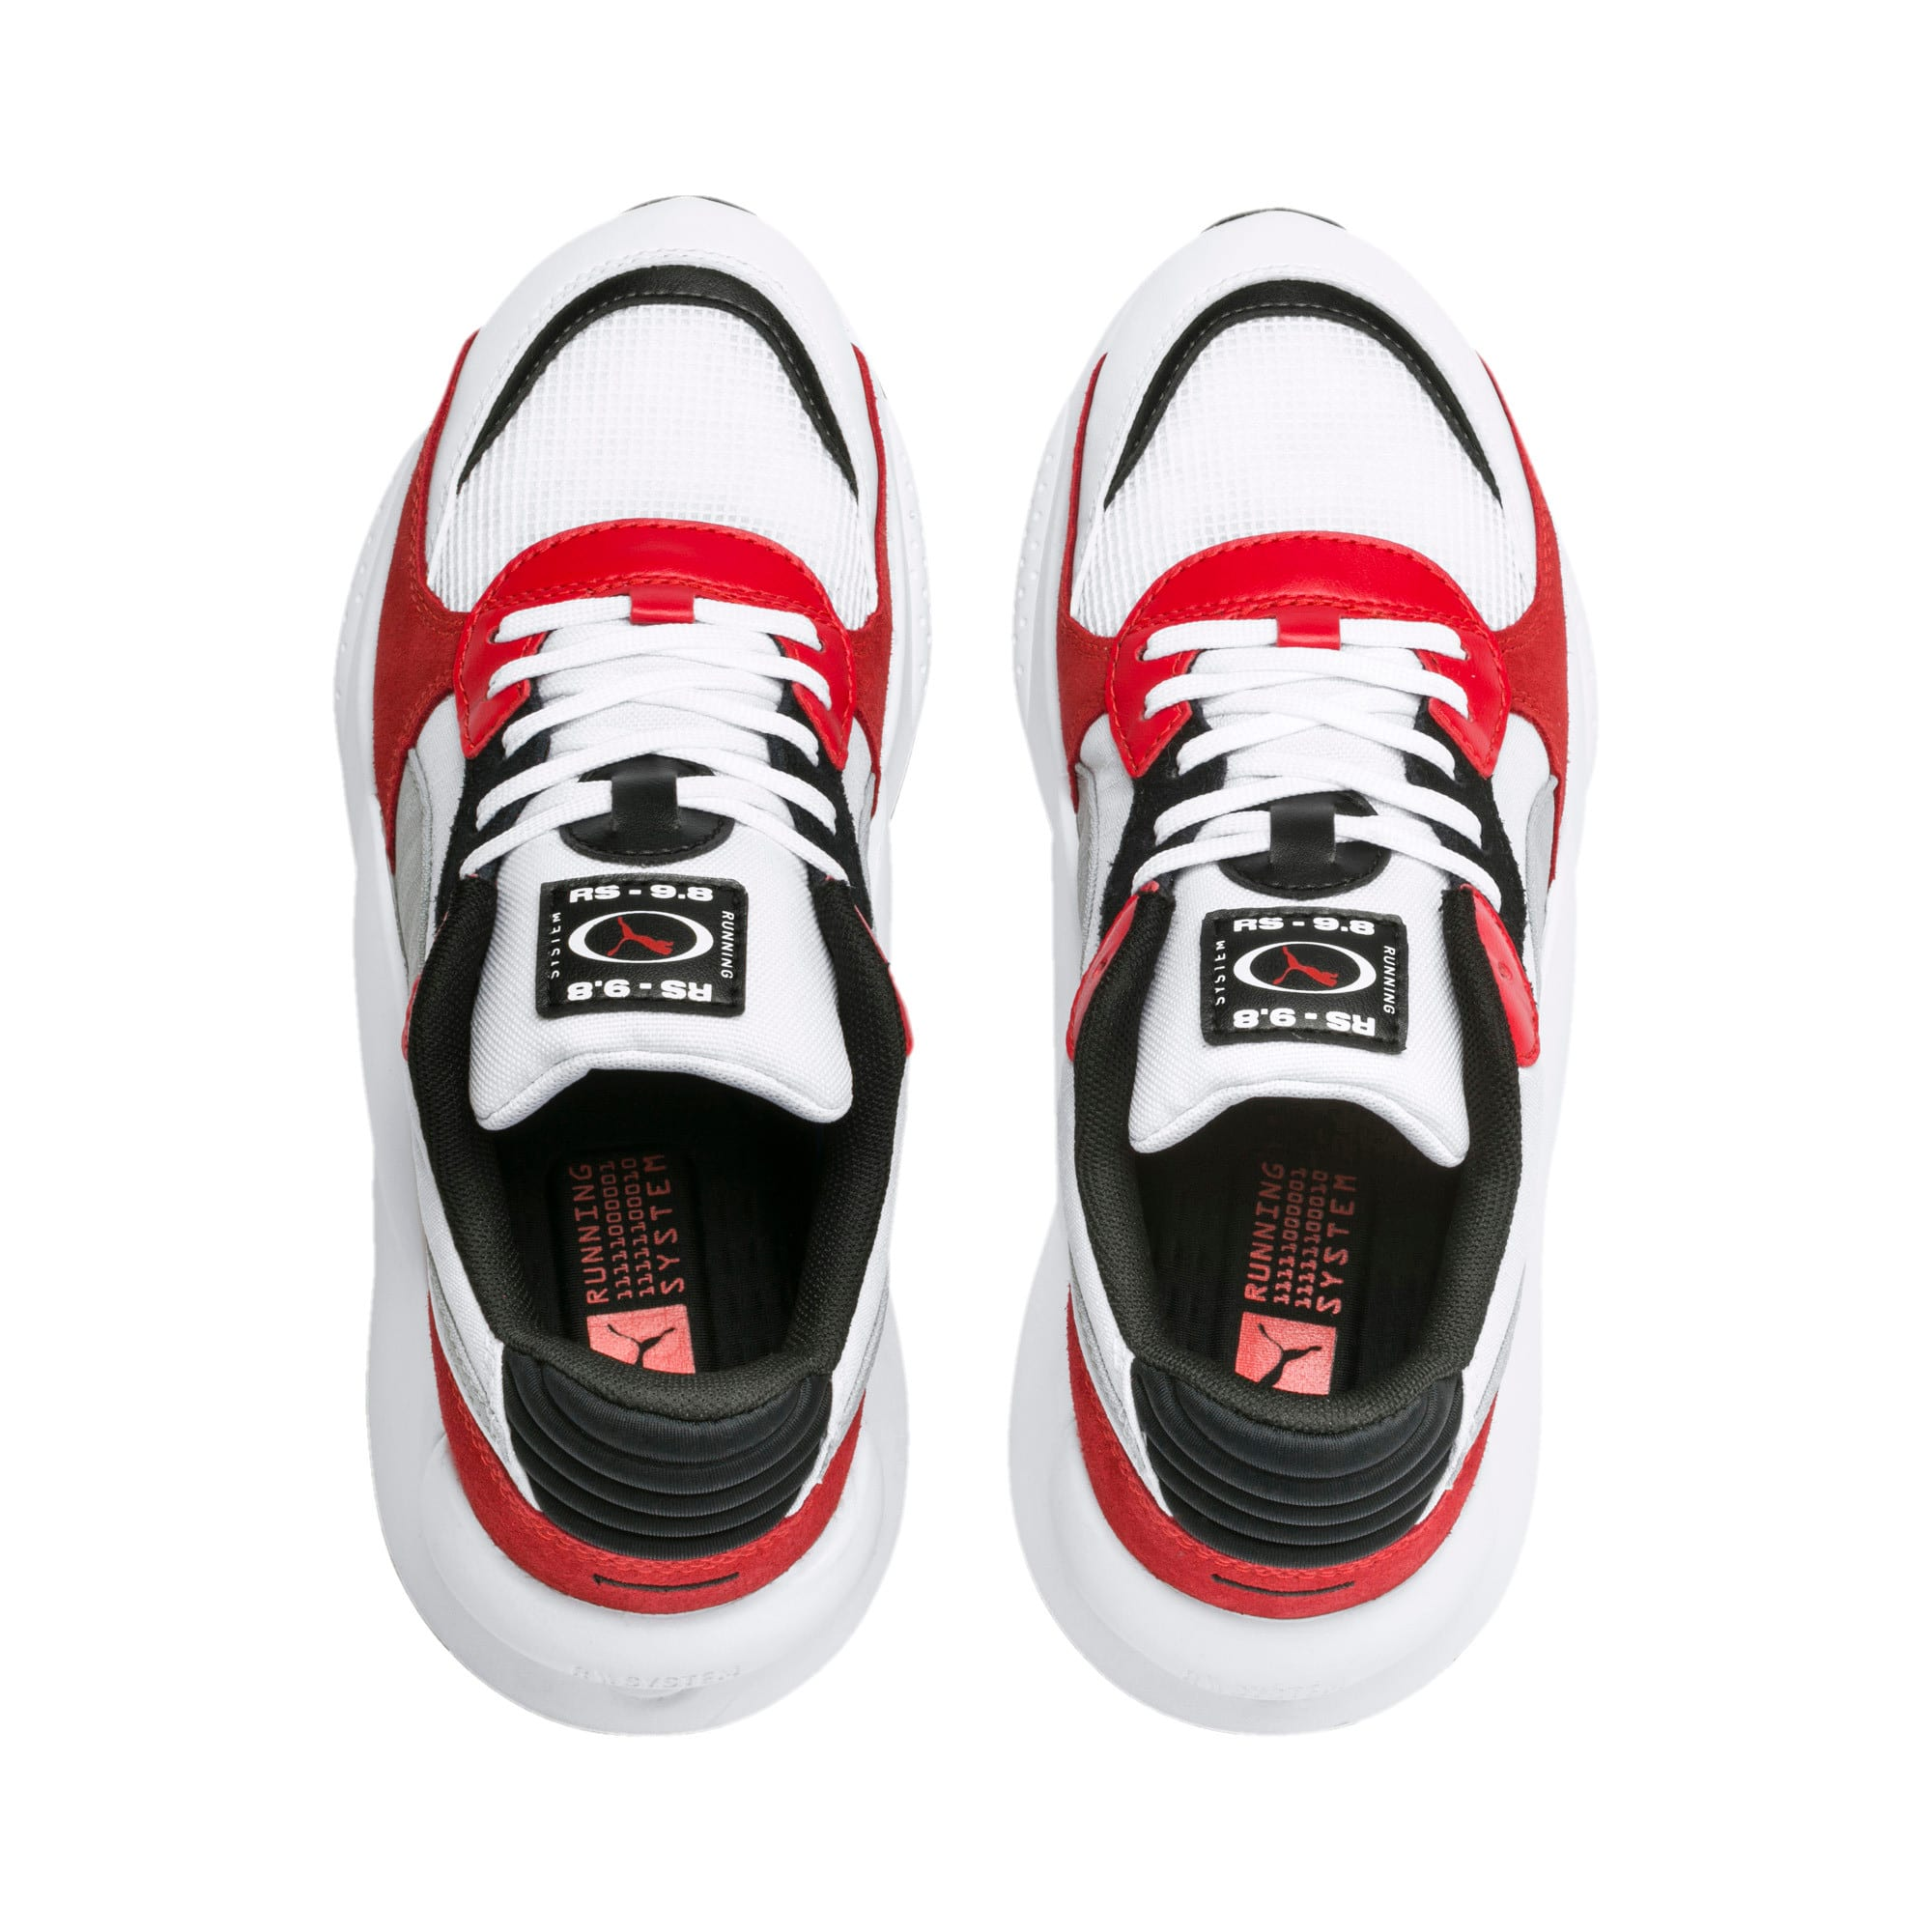 Thumbnail 6 of RS 9.8 Space Youth Trainers, Puma White-High Risk Red, medium